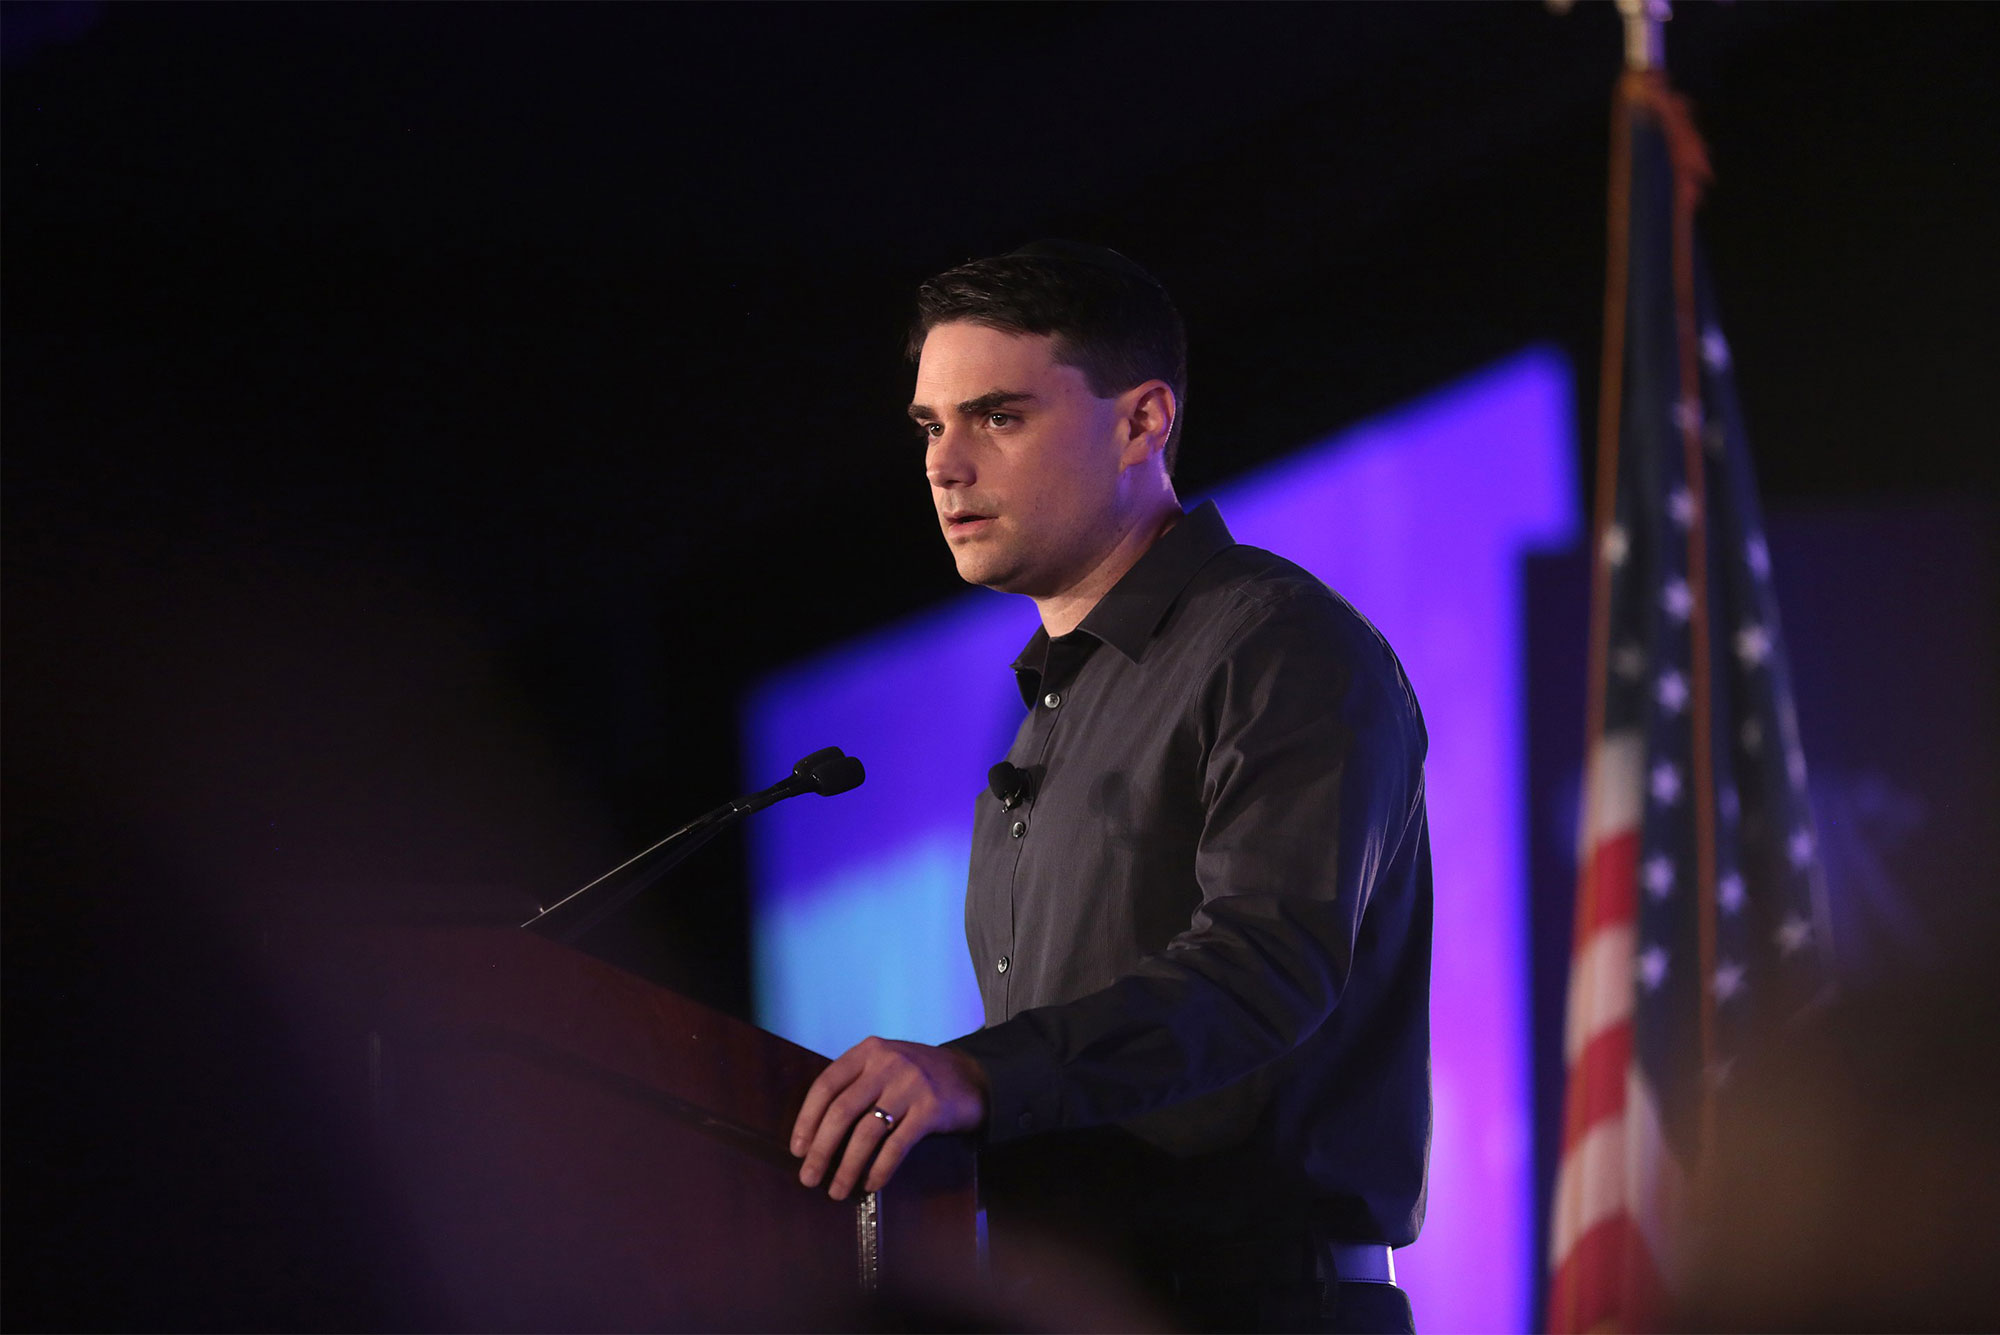 Conservative commentator Ben Shapiro speaking at a podium during a public appearance.